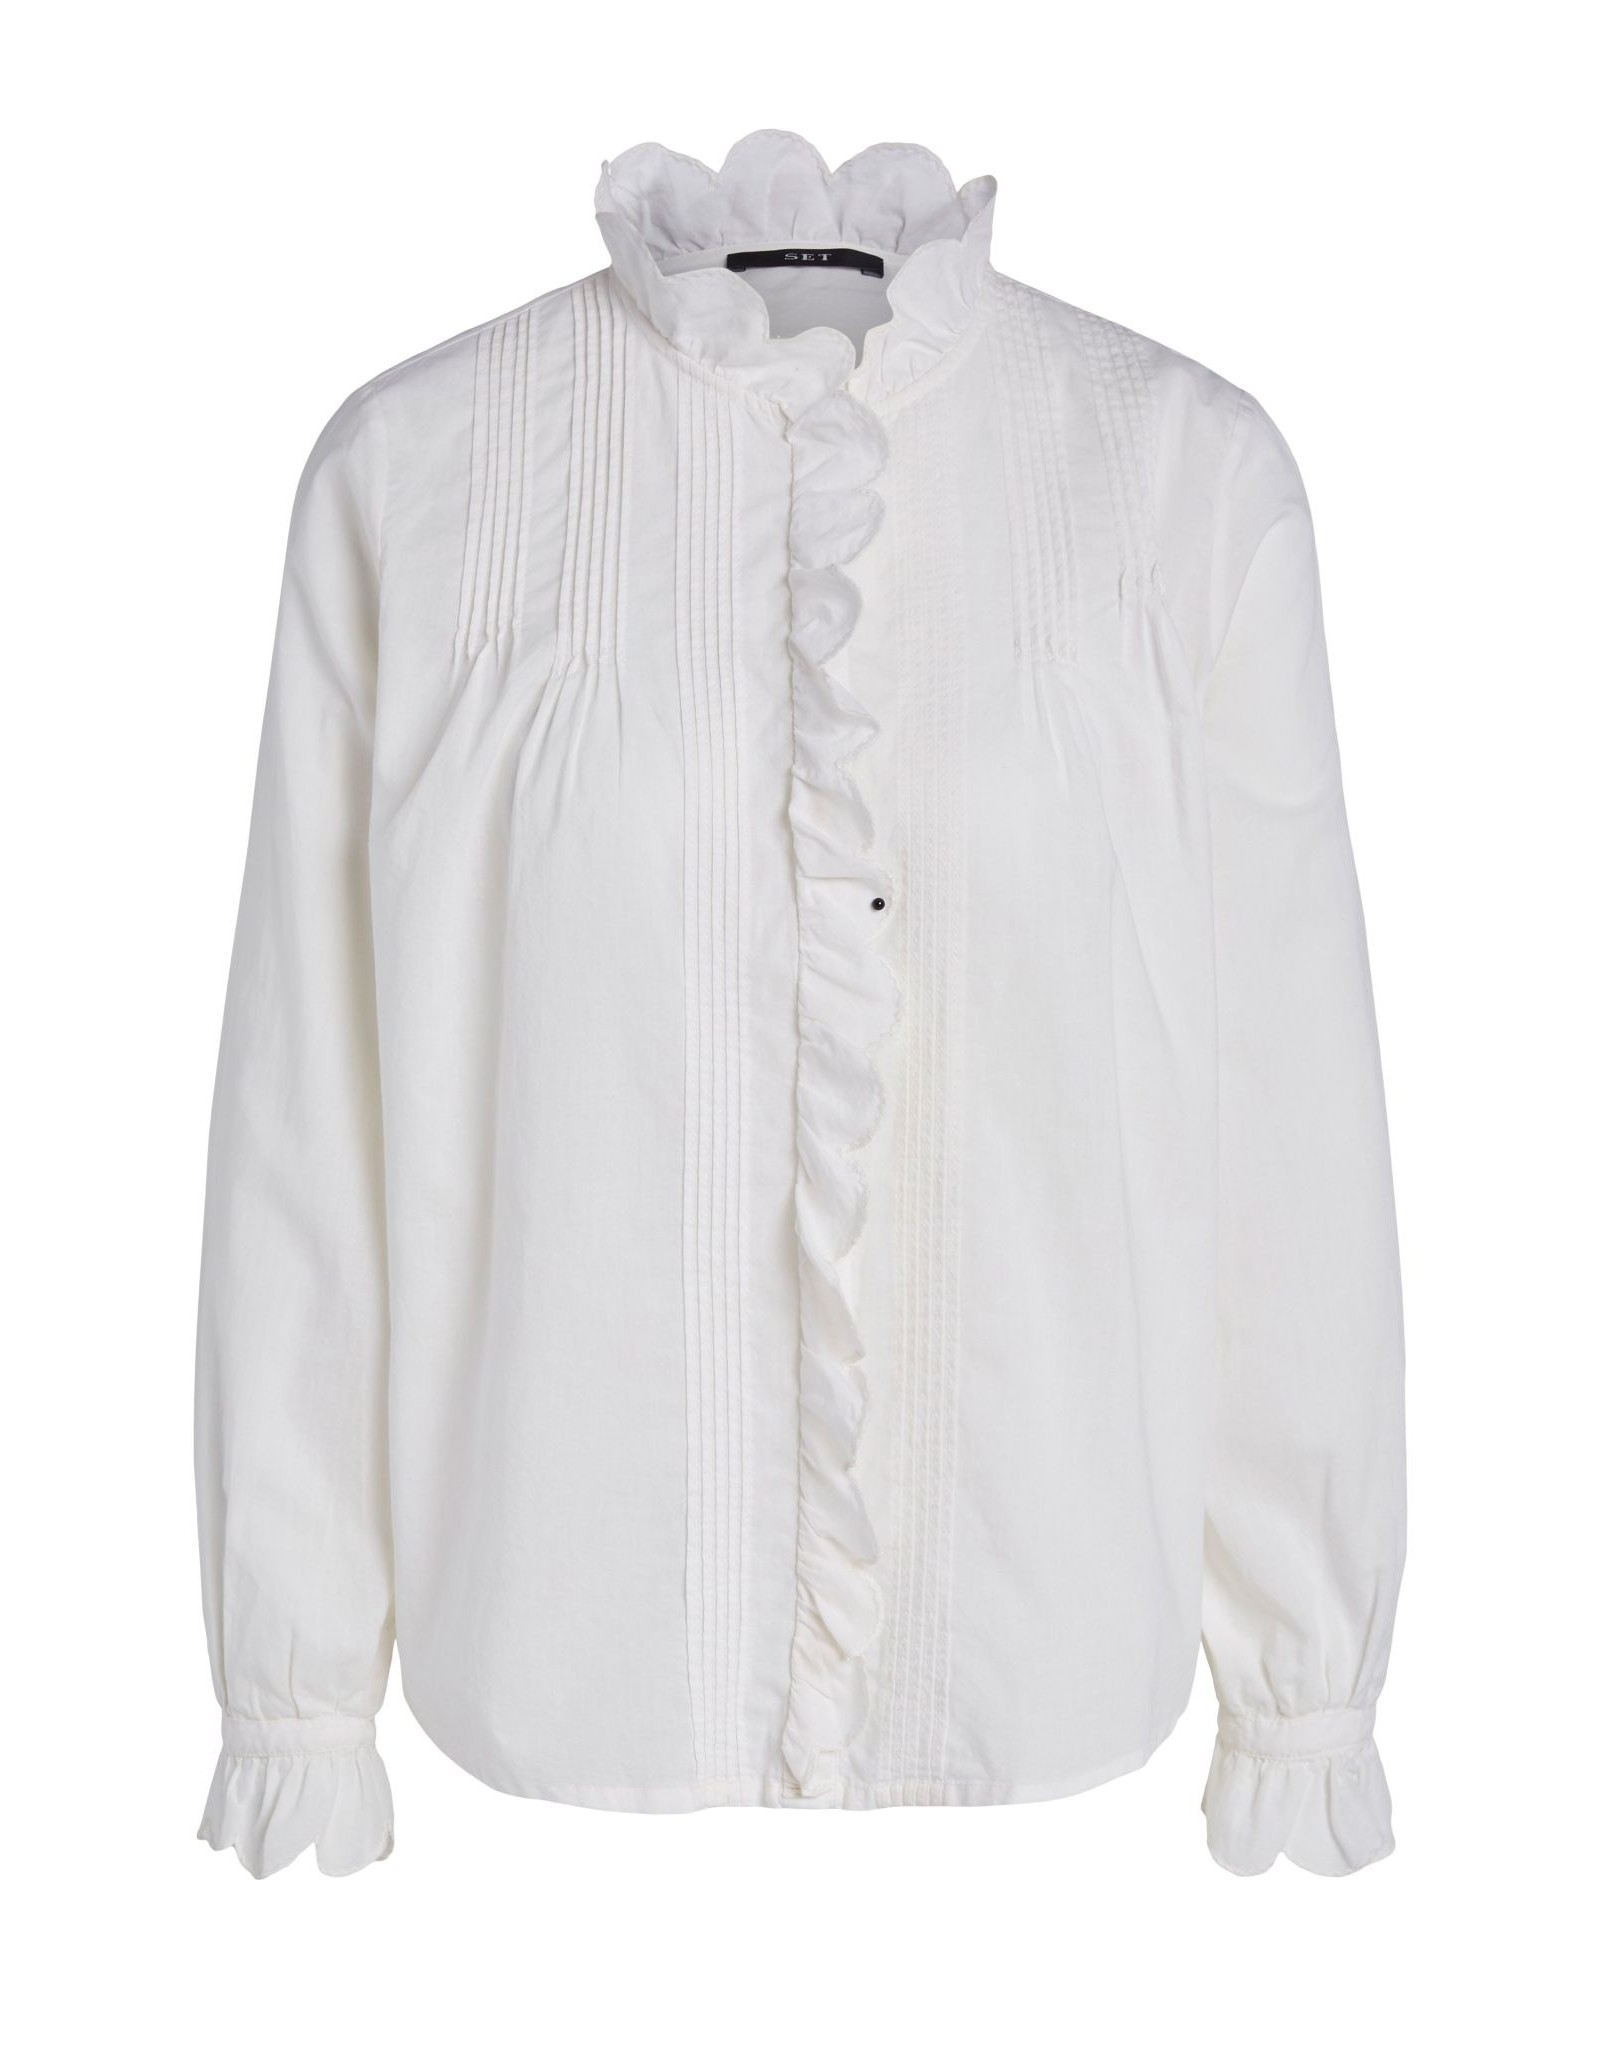 SET Lightweight cotton blouse with frill collar